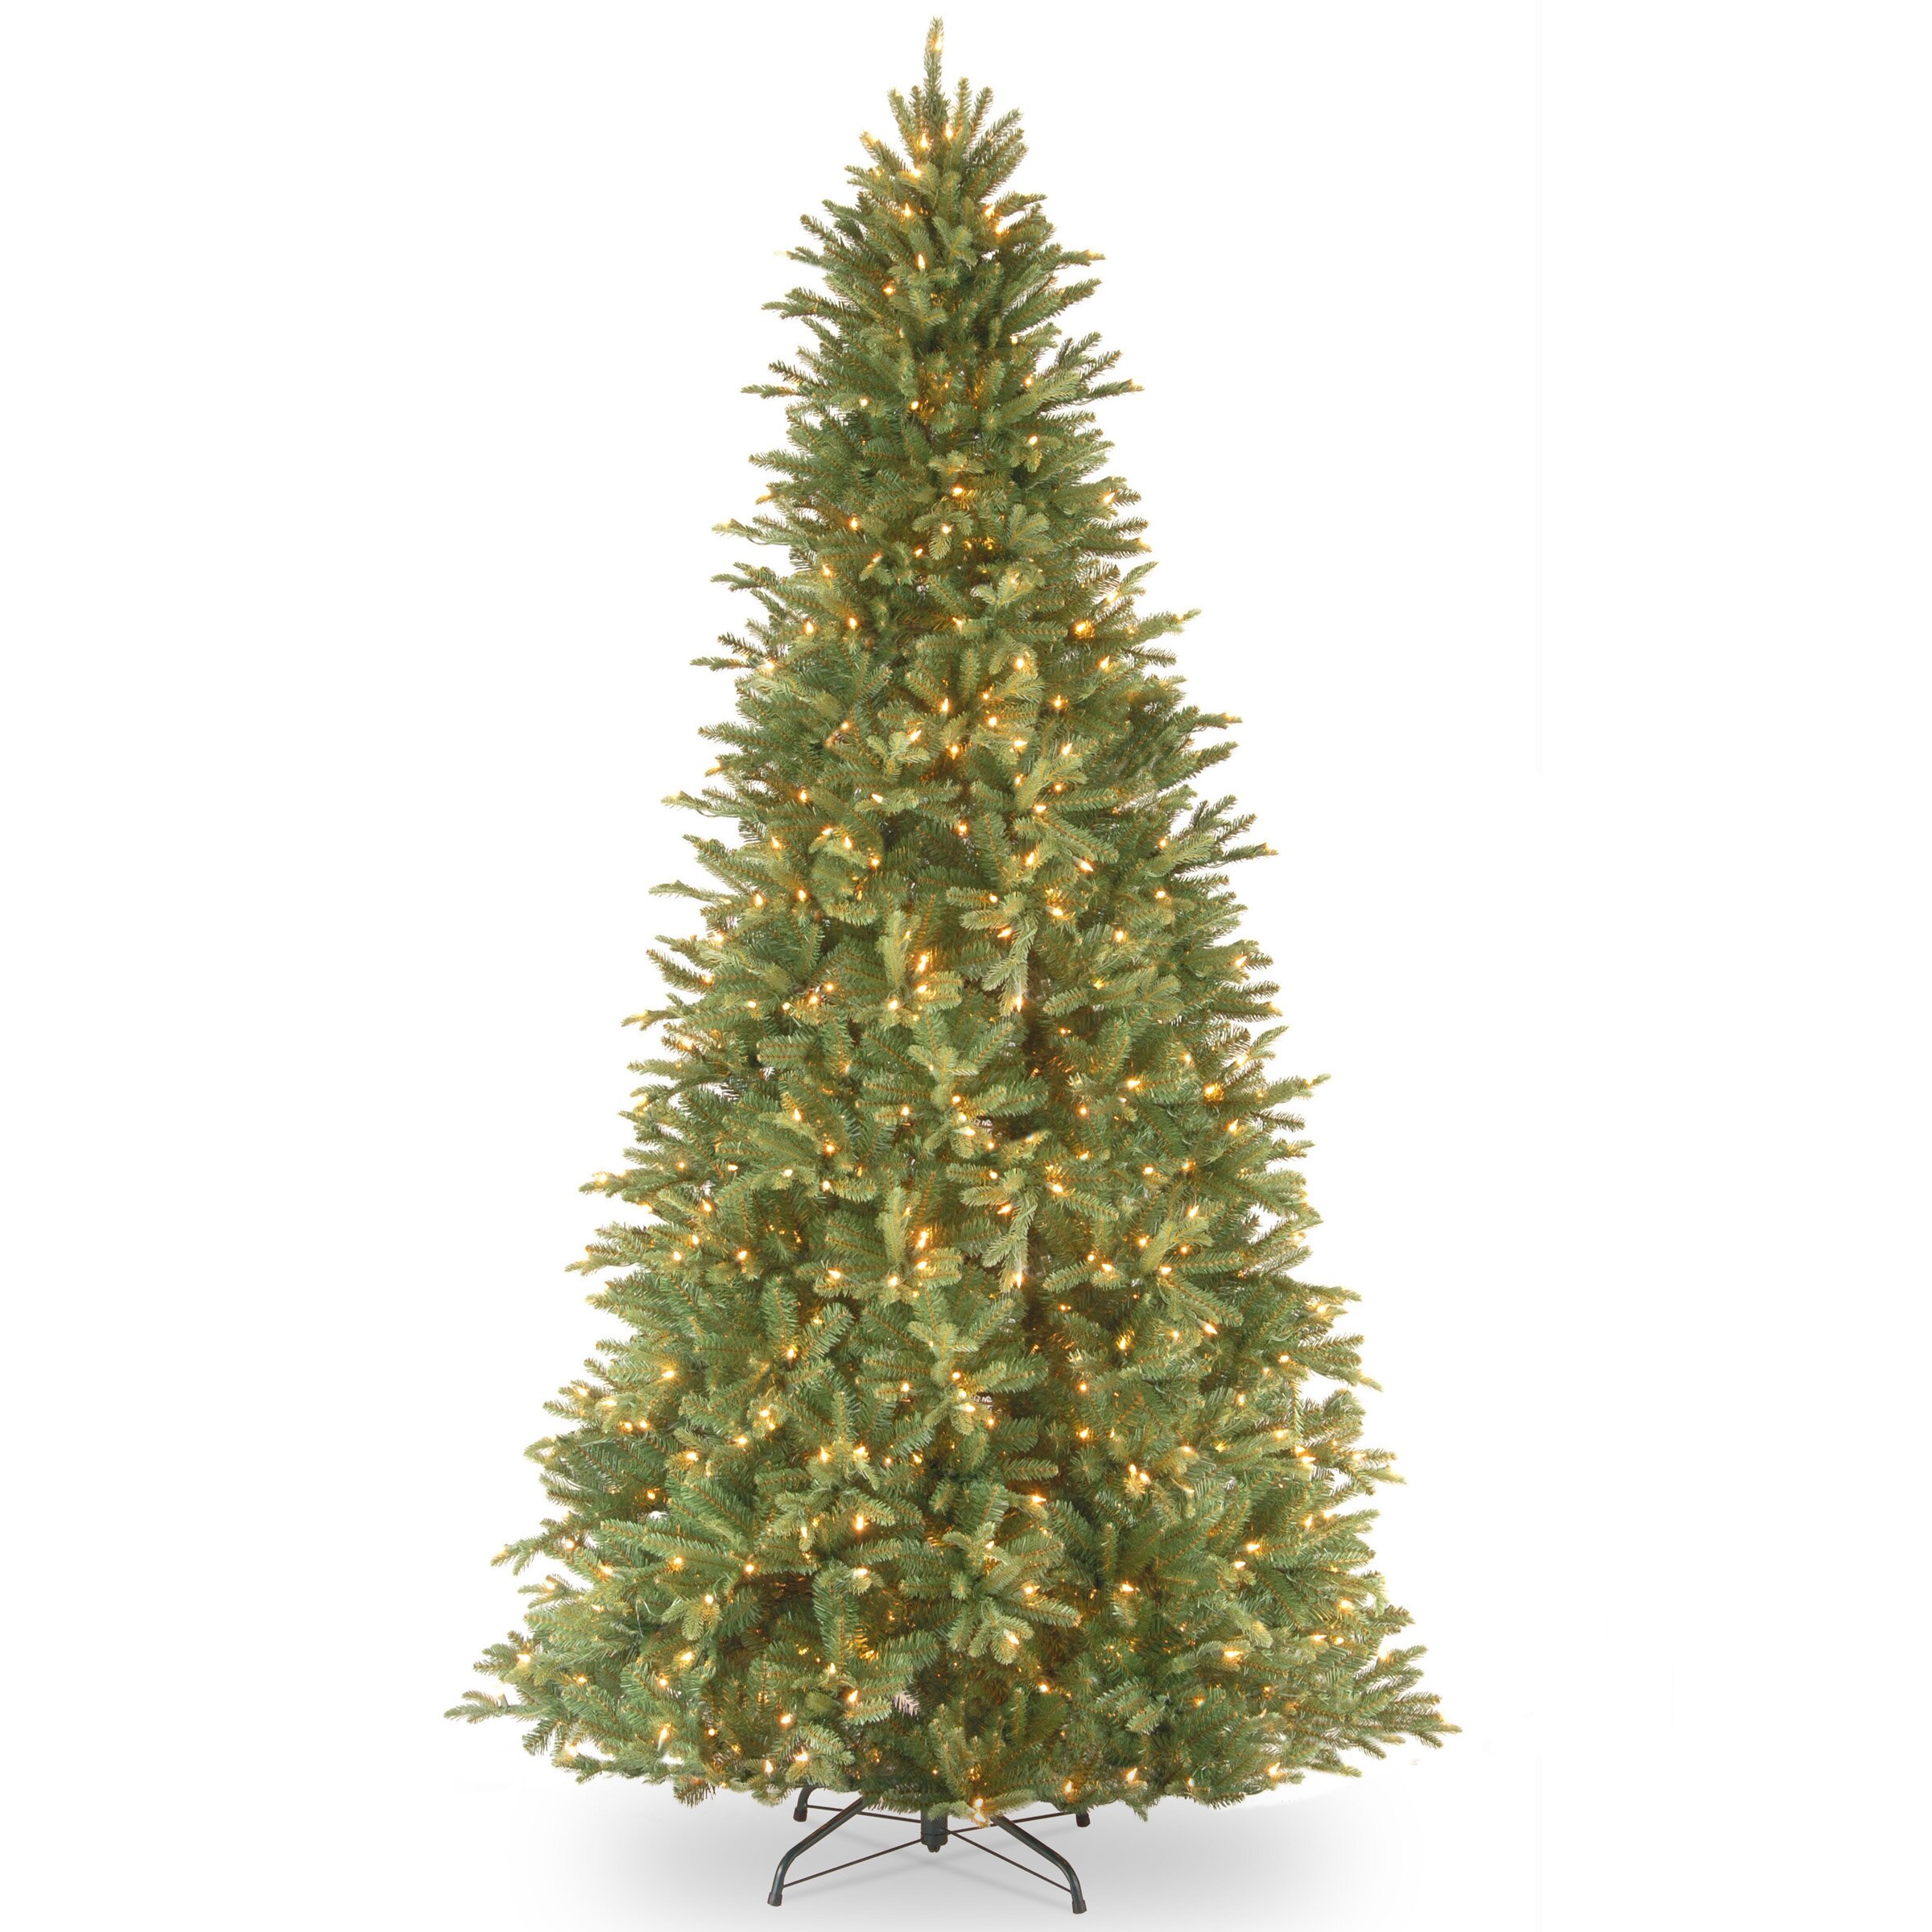 Discount Pre Lit 12 Christmas Tree: National Tree Co. Tiffany Fir 12' Green Artificial